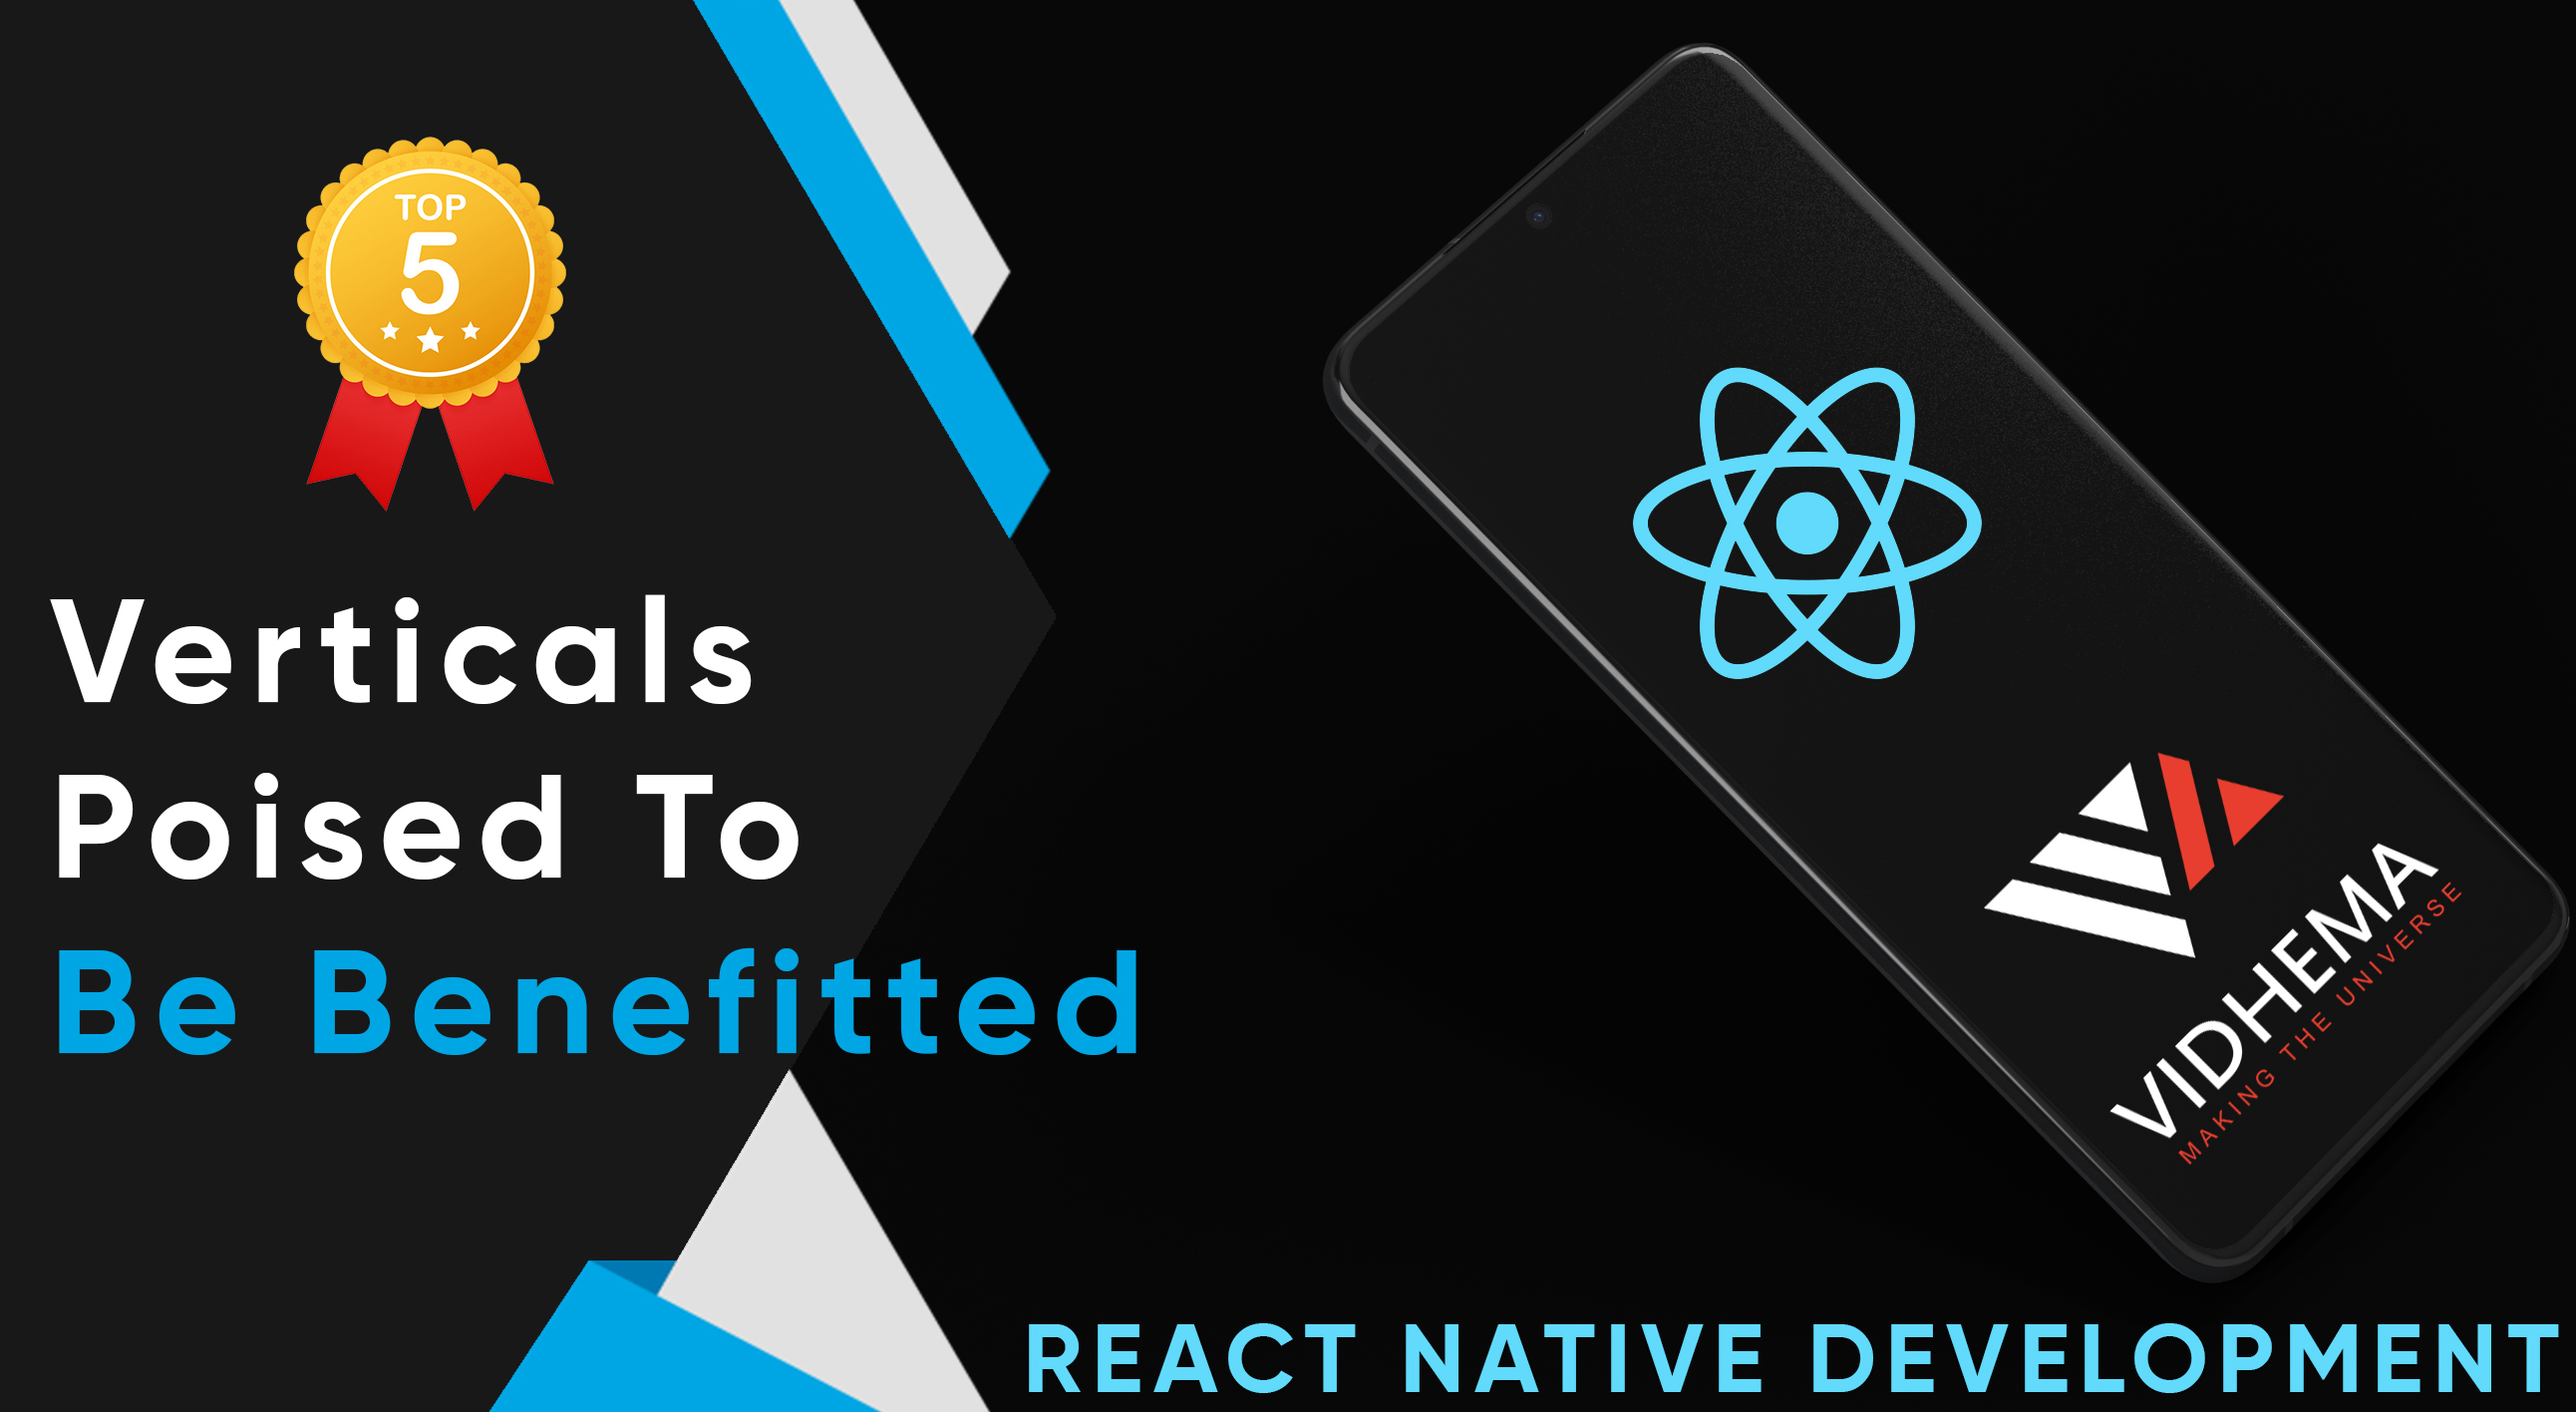 React Native Development: Top 5 Verticals Poised To Be Benefitted